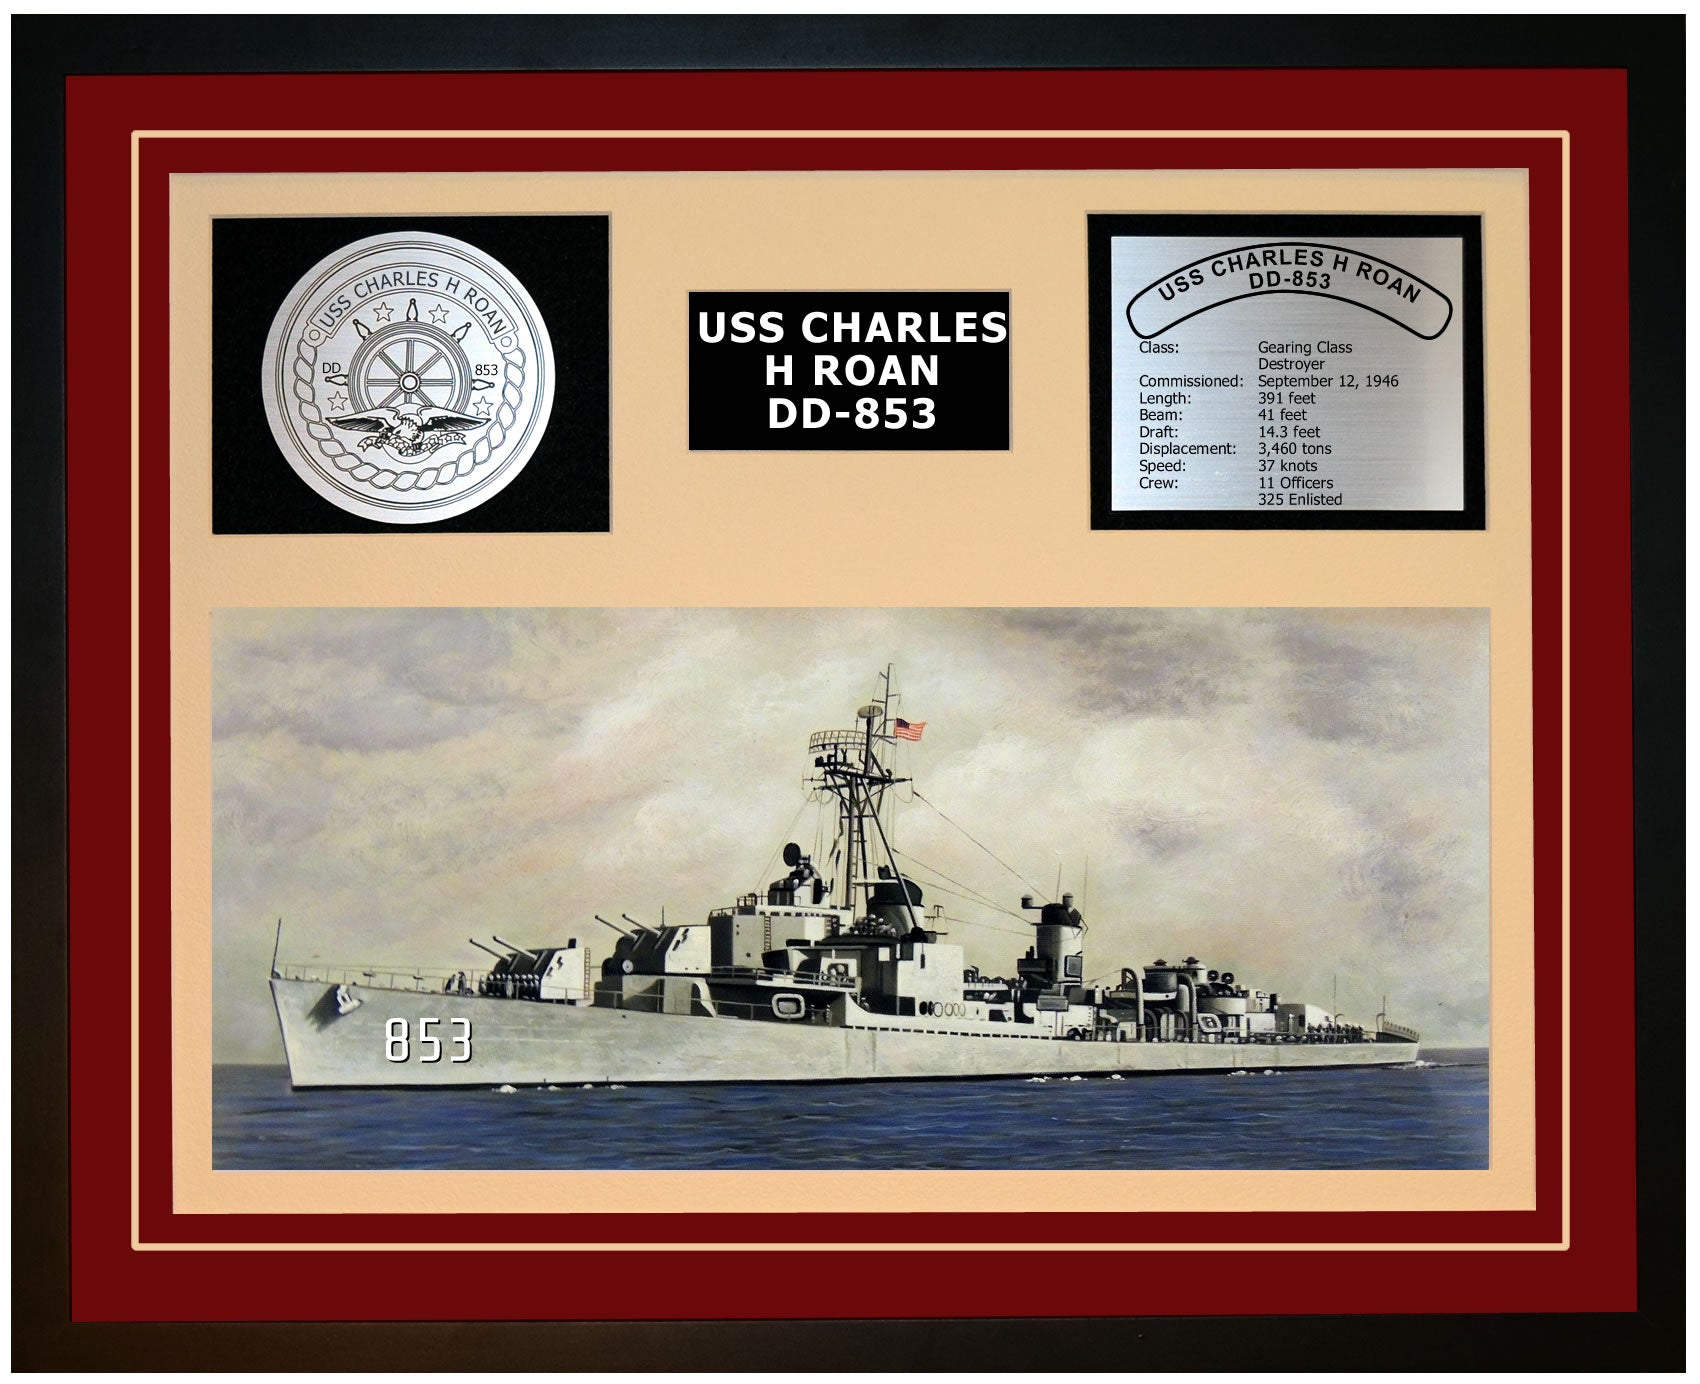 USS CHARLES H ROAN DD-853 Framed Navy Ship Display Burgundy